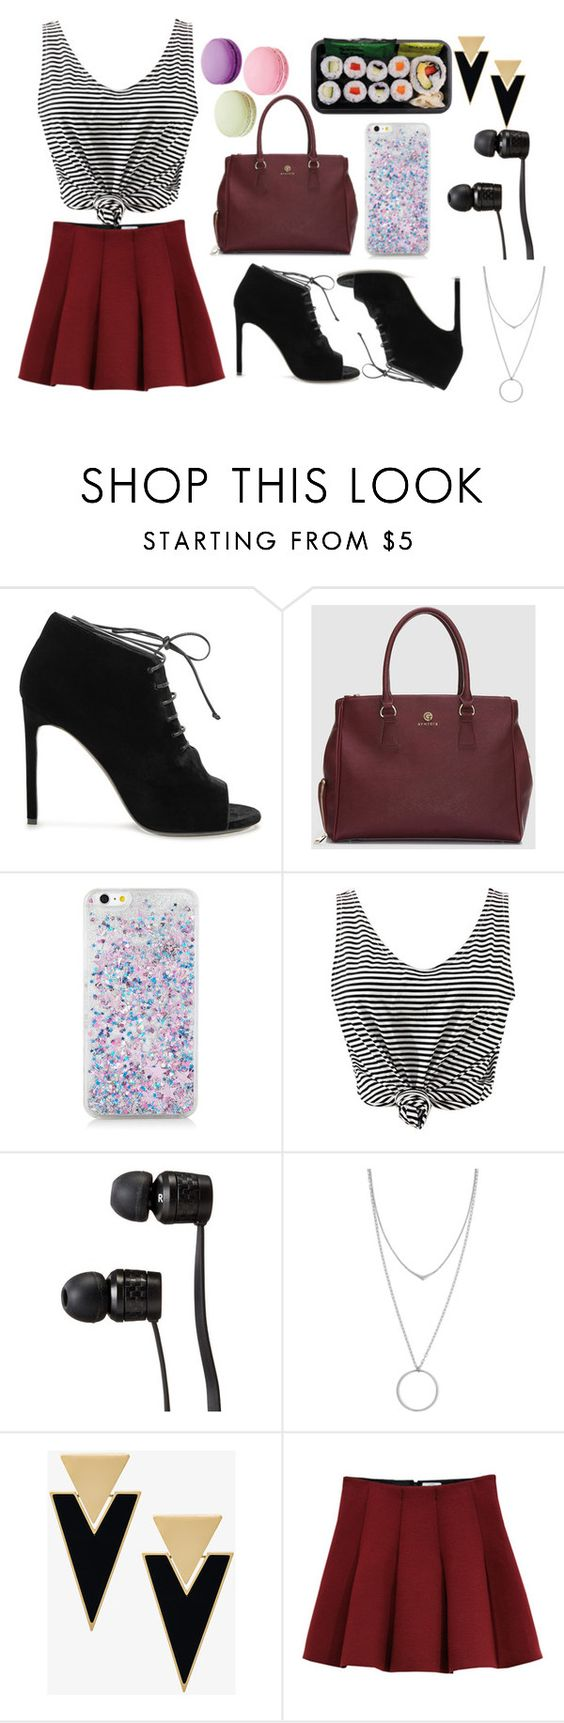 """The usual"" by bells202 ❤ liked on Polyvore featuring Yves Saint Laurent, WithChic, Vans, Botkier, Outstanding Ordinary and Ladurée"